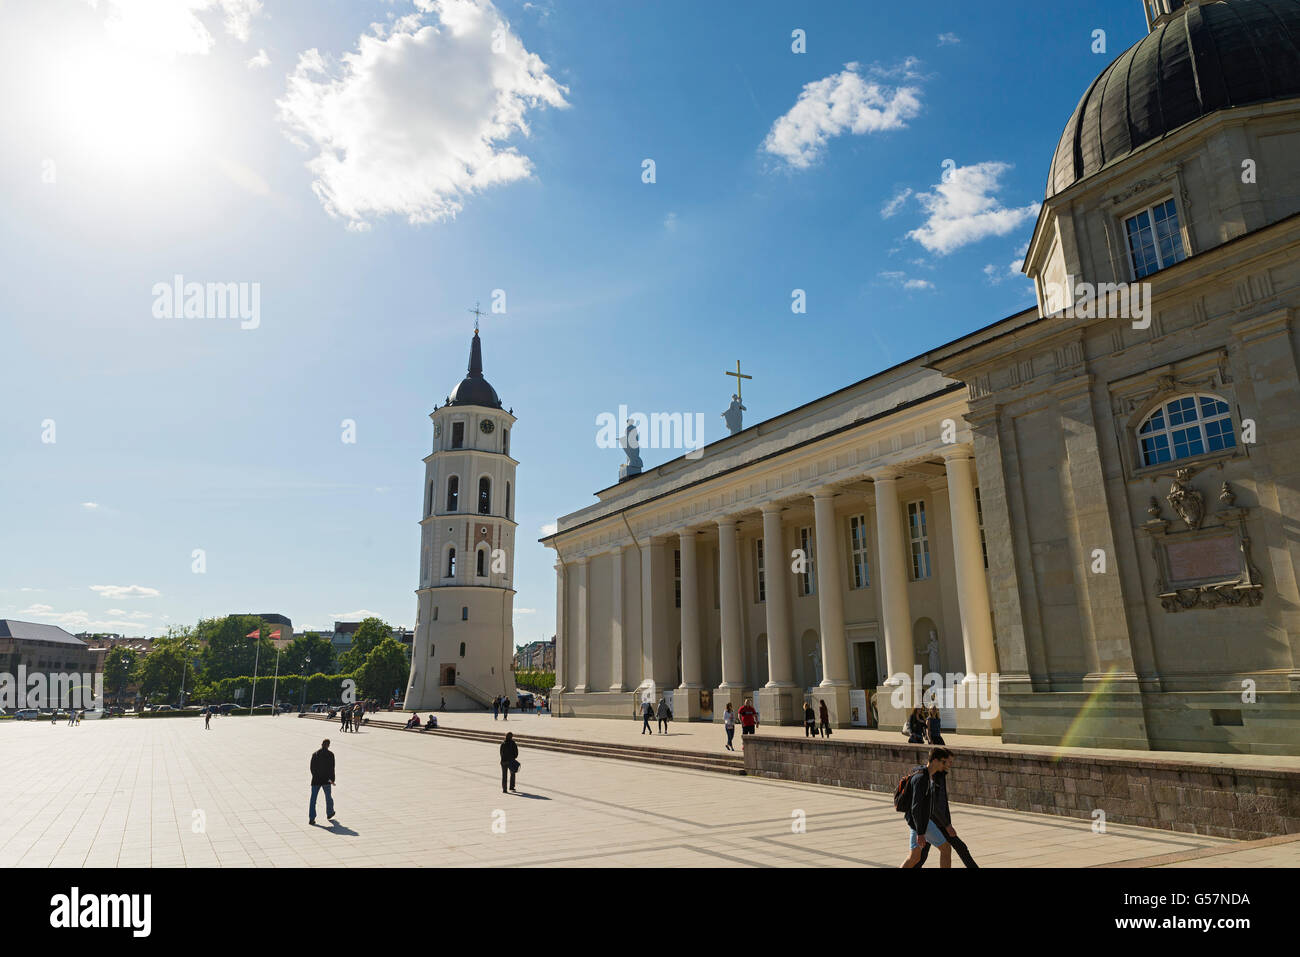 VILNIUS, LITHUANIA - JUNE 8, 2016: People at the Cathedral Square near the Cathedral of Vilnius. backlighting - Stock Image